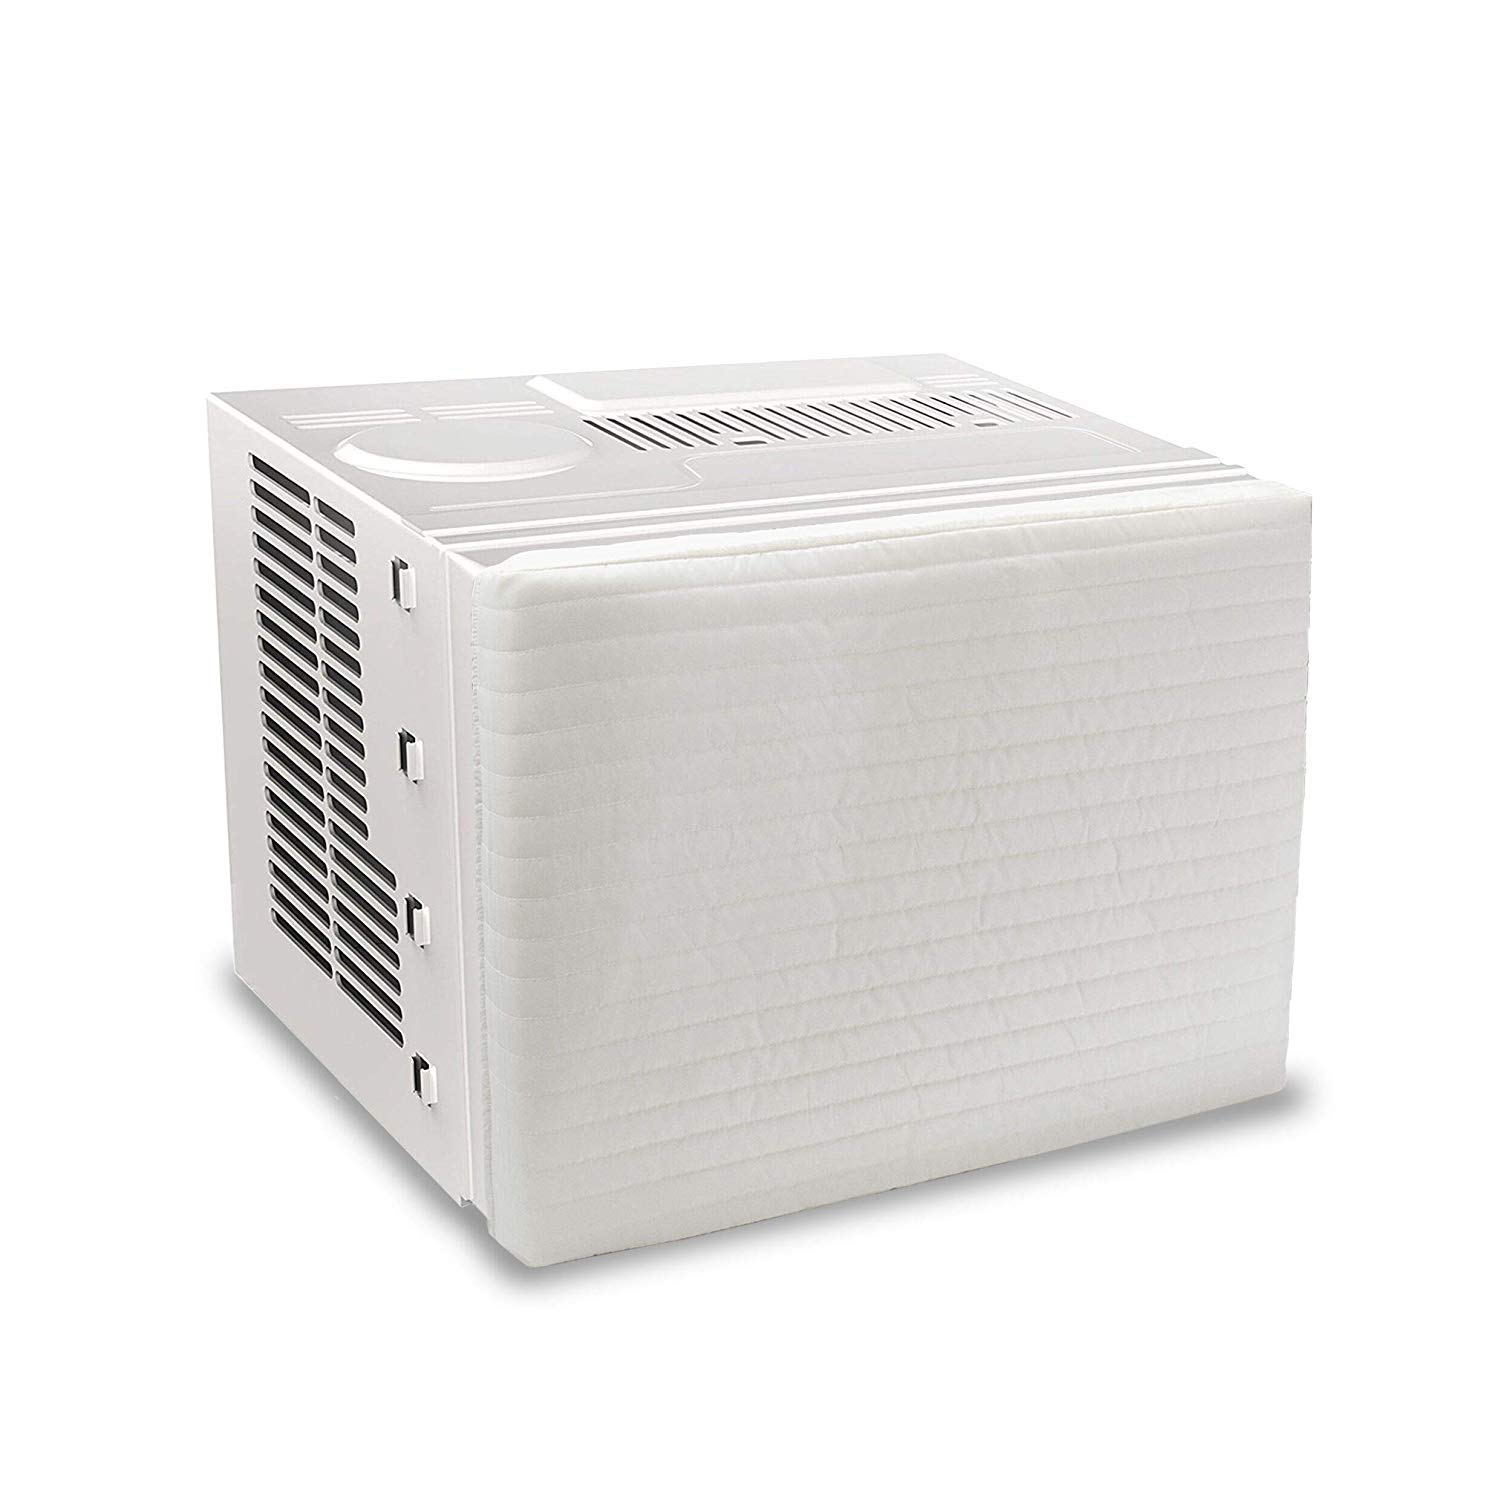 Jeacent Indoor Air Conditioner Cover